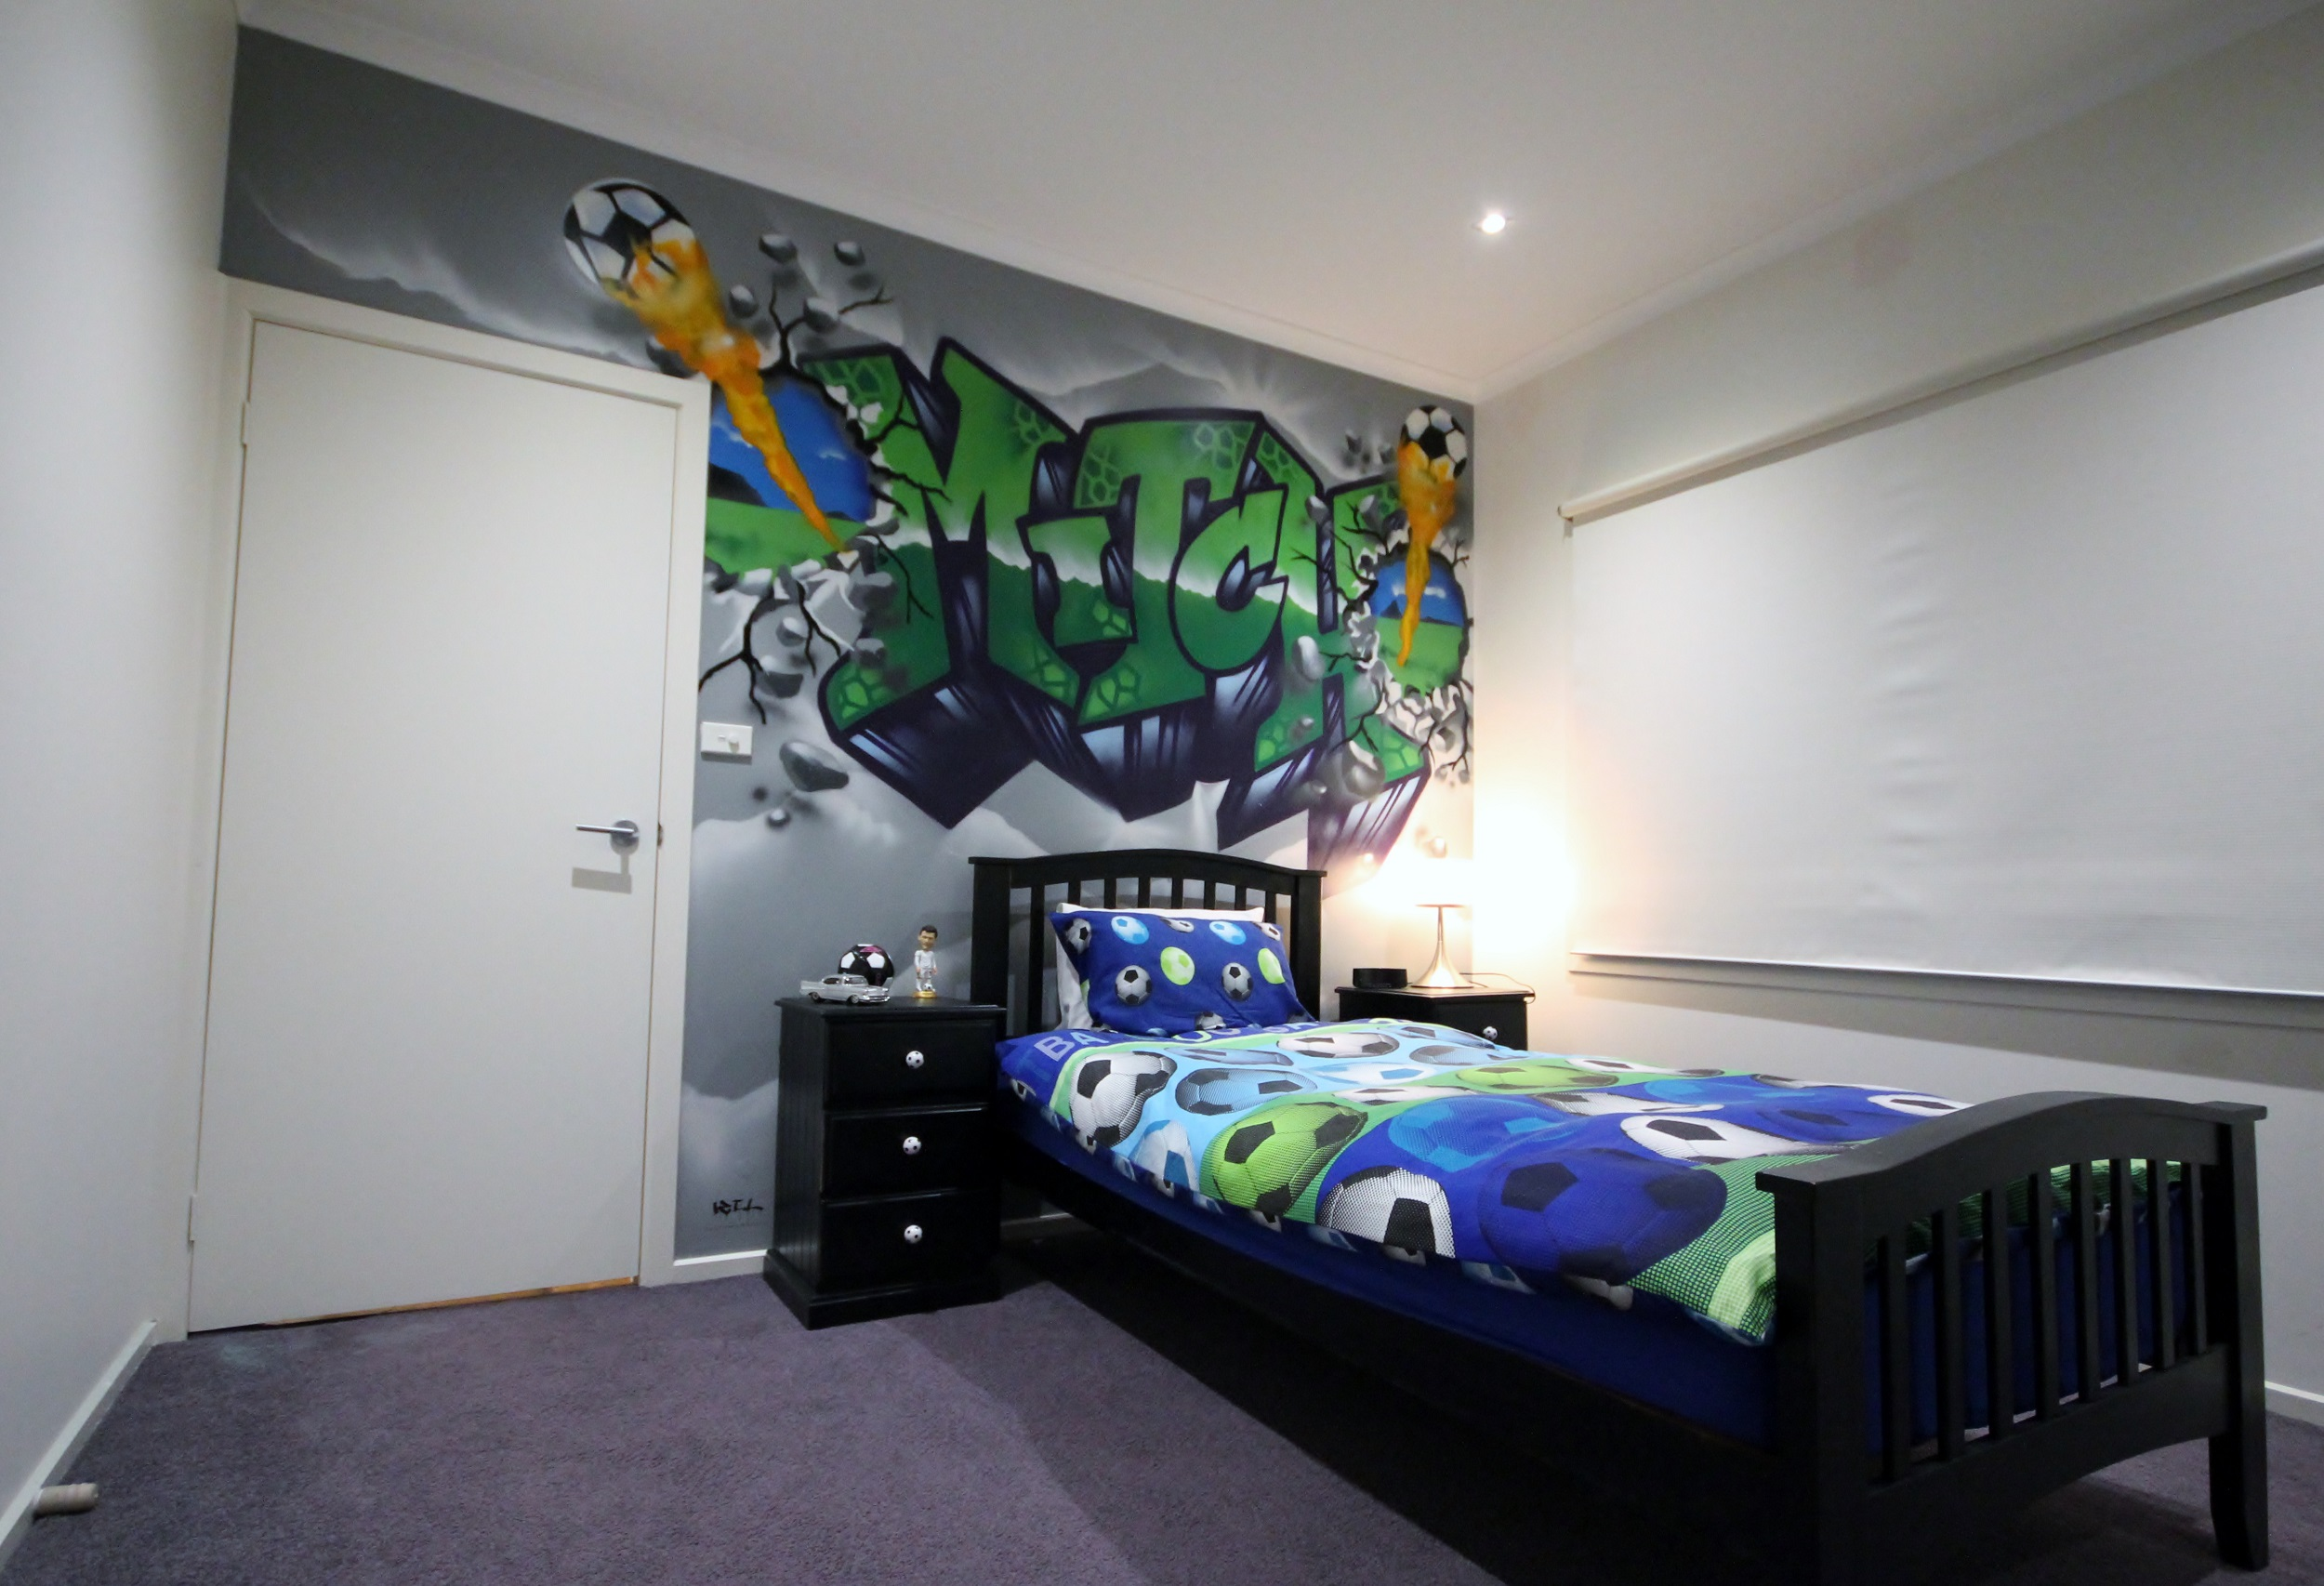 Mitch Kids Soccer Bedroom in graffiti